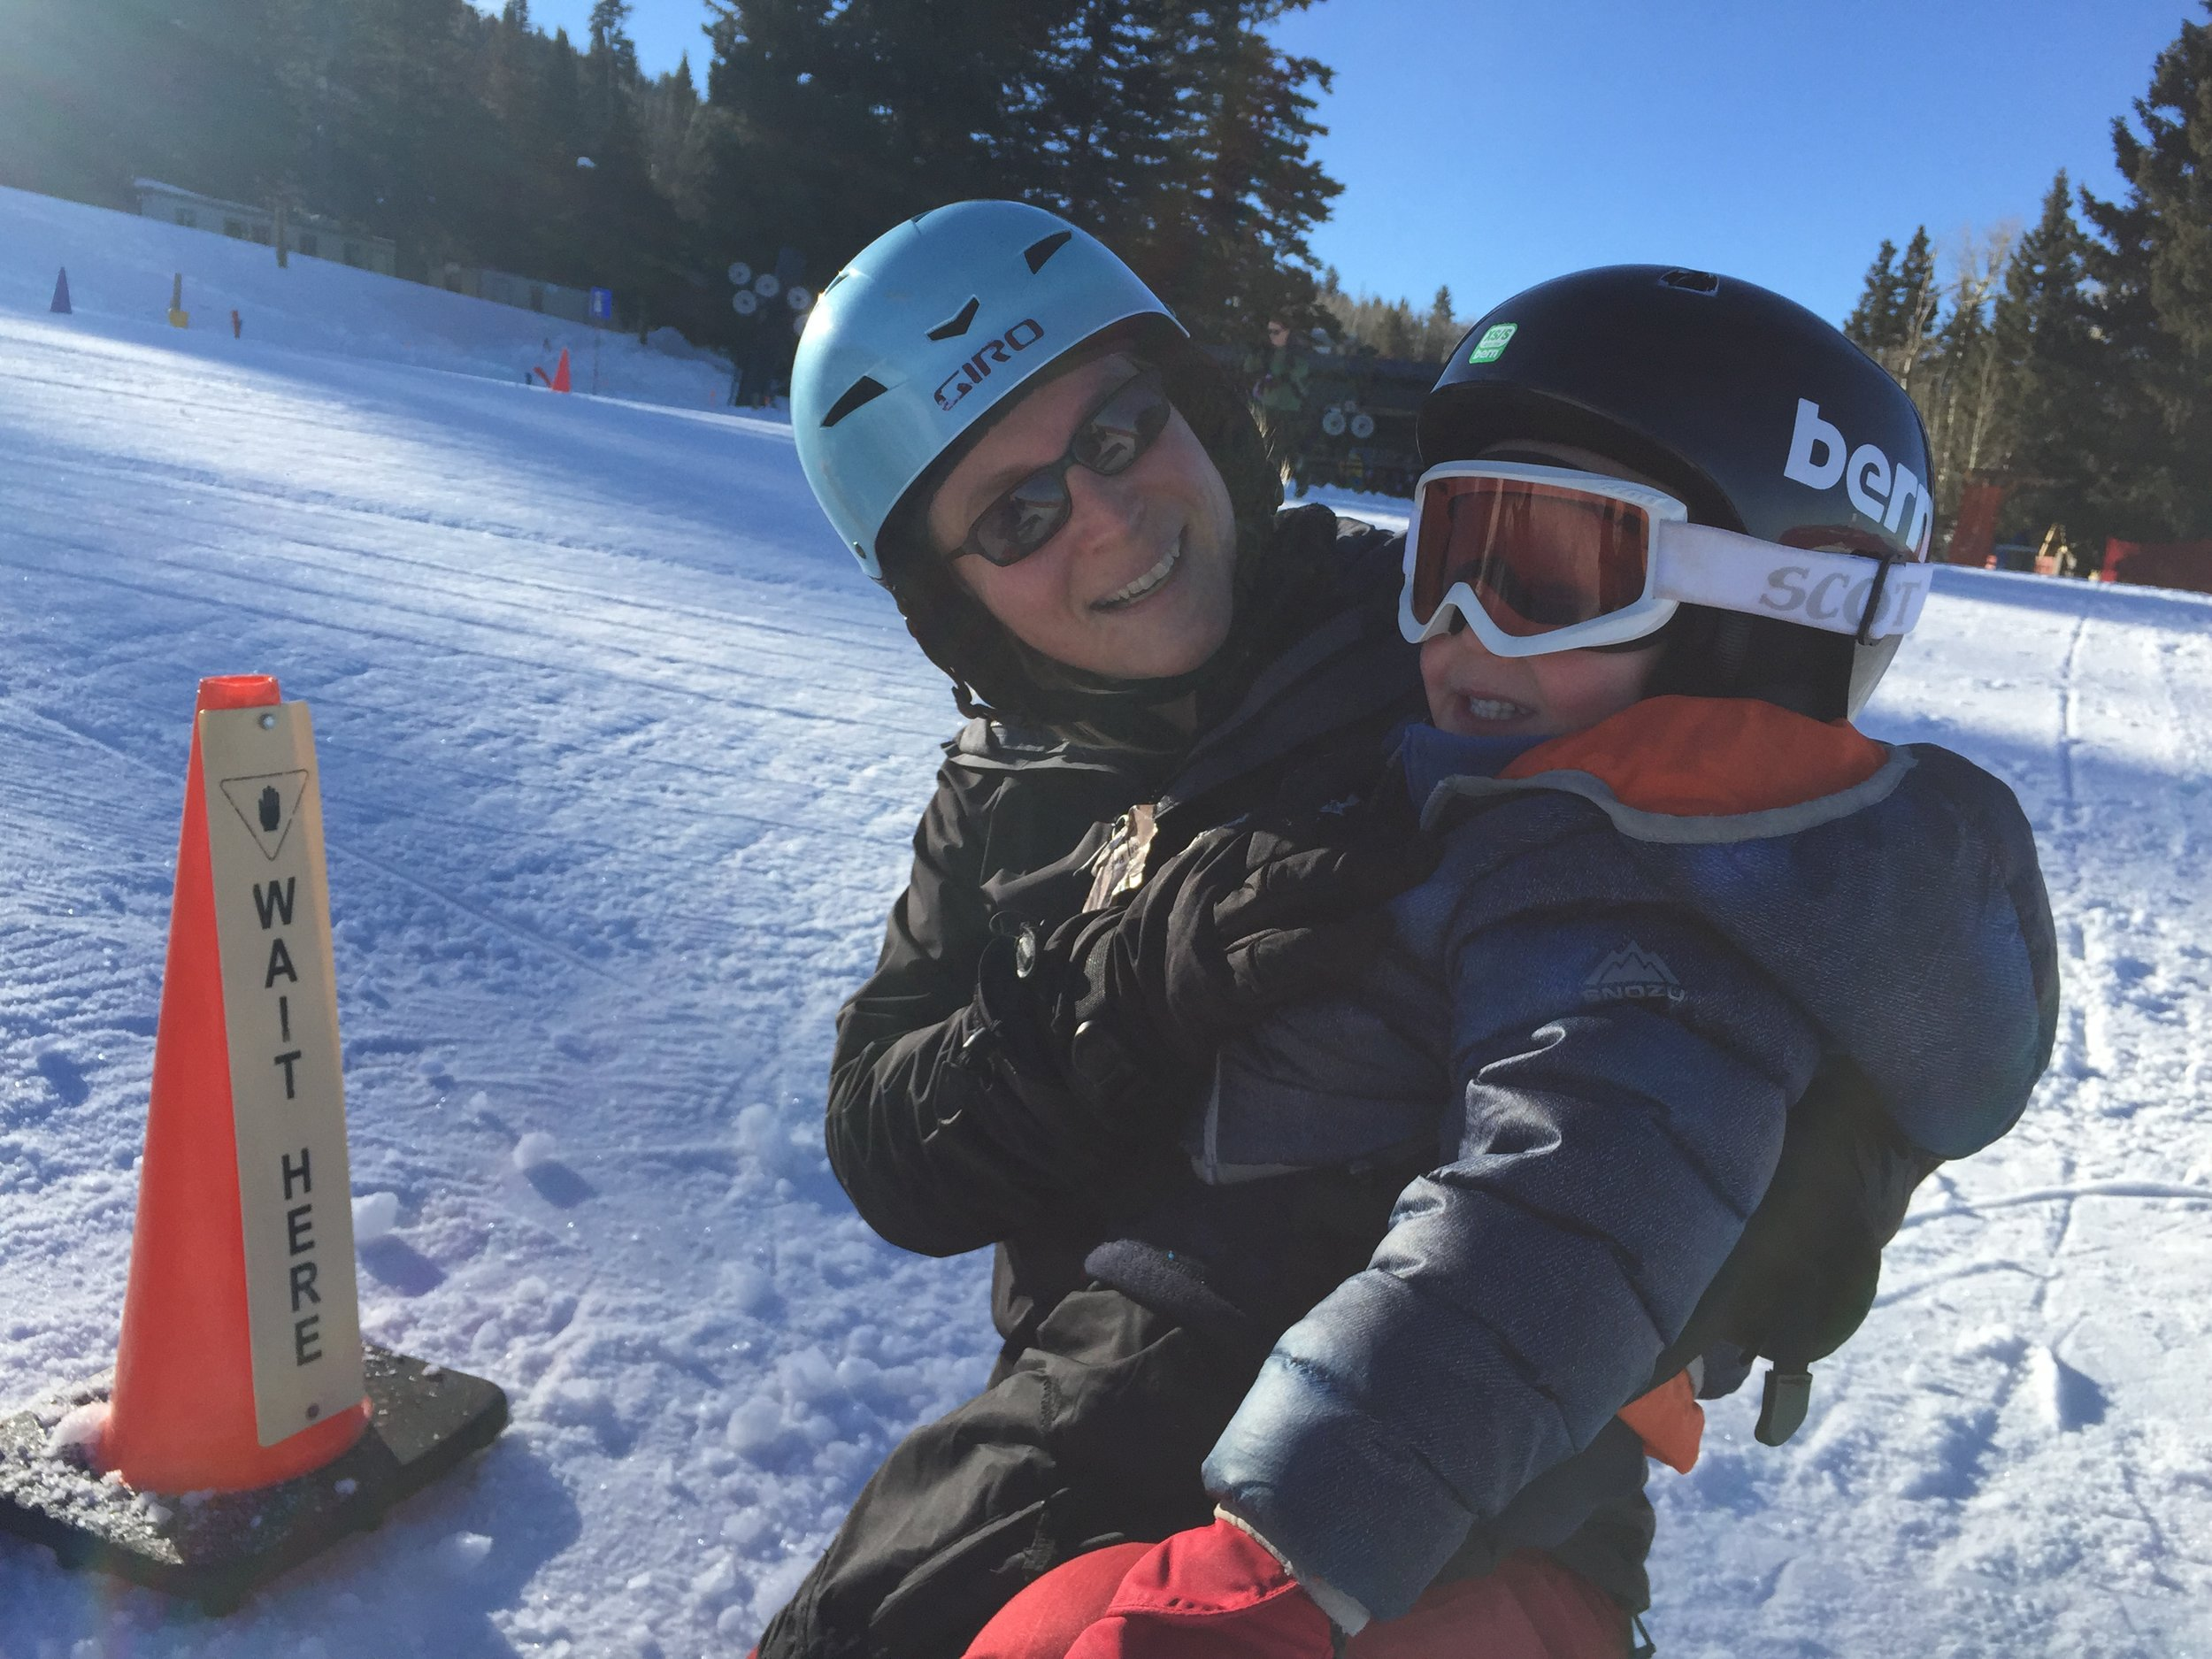 Having fun and bonding on the slopes is the most important thing at this age!